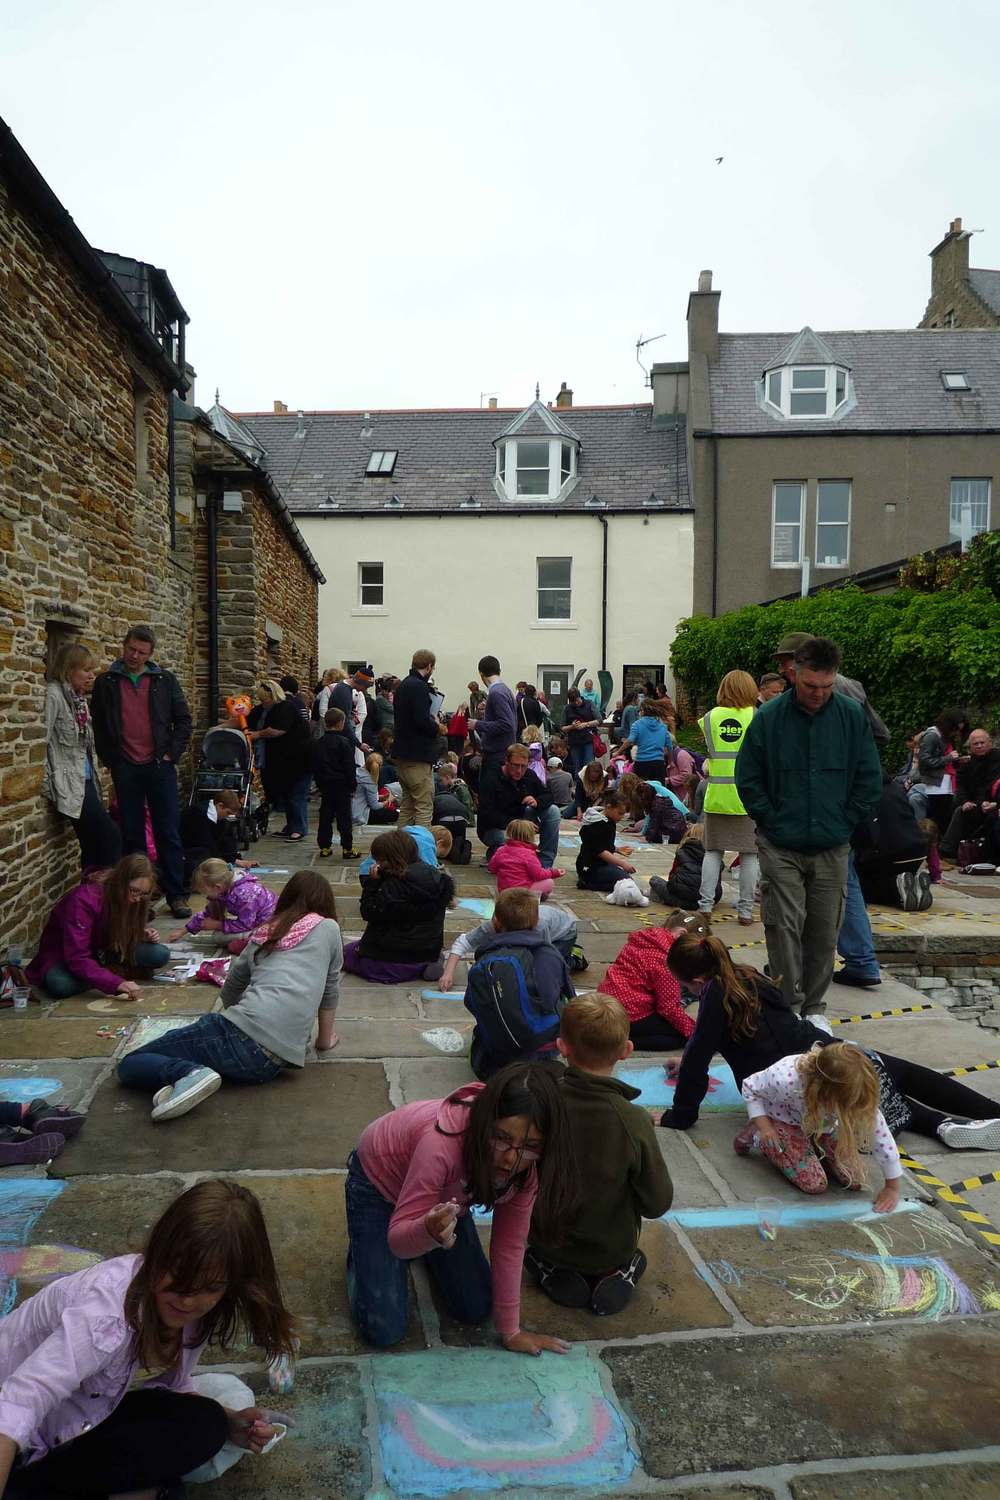 Pavement Artist Competition